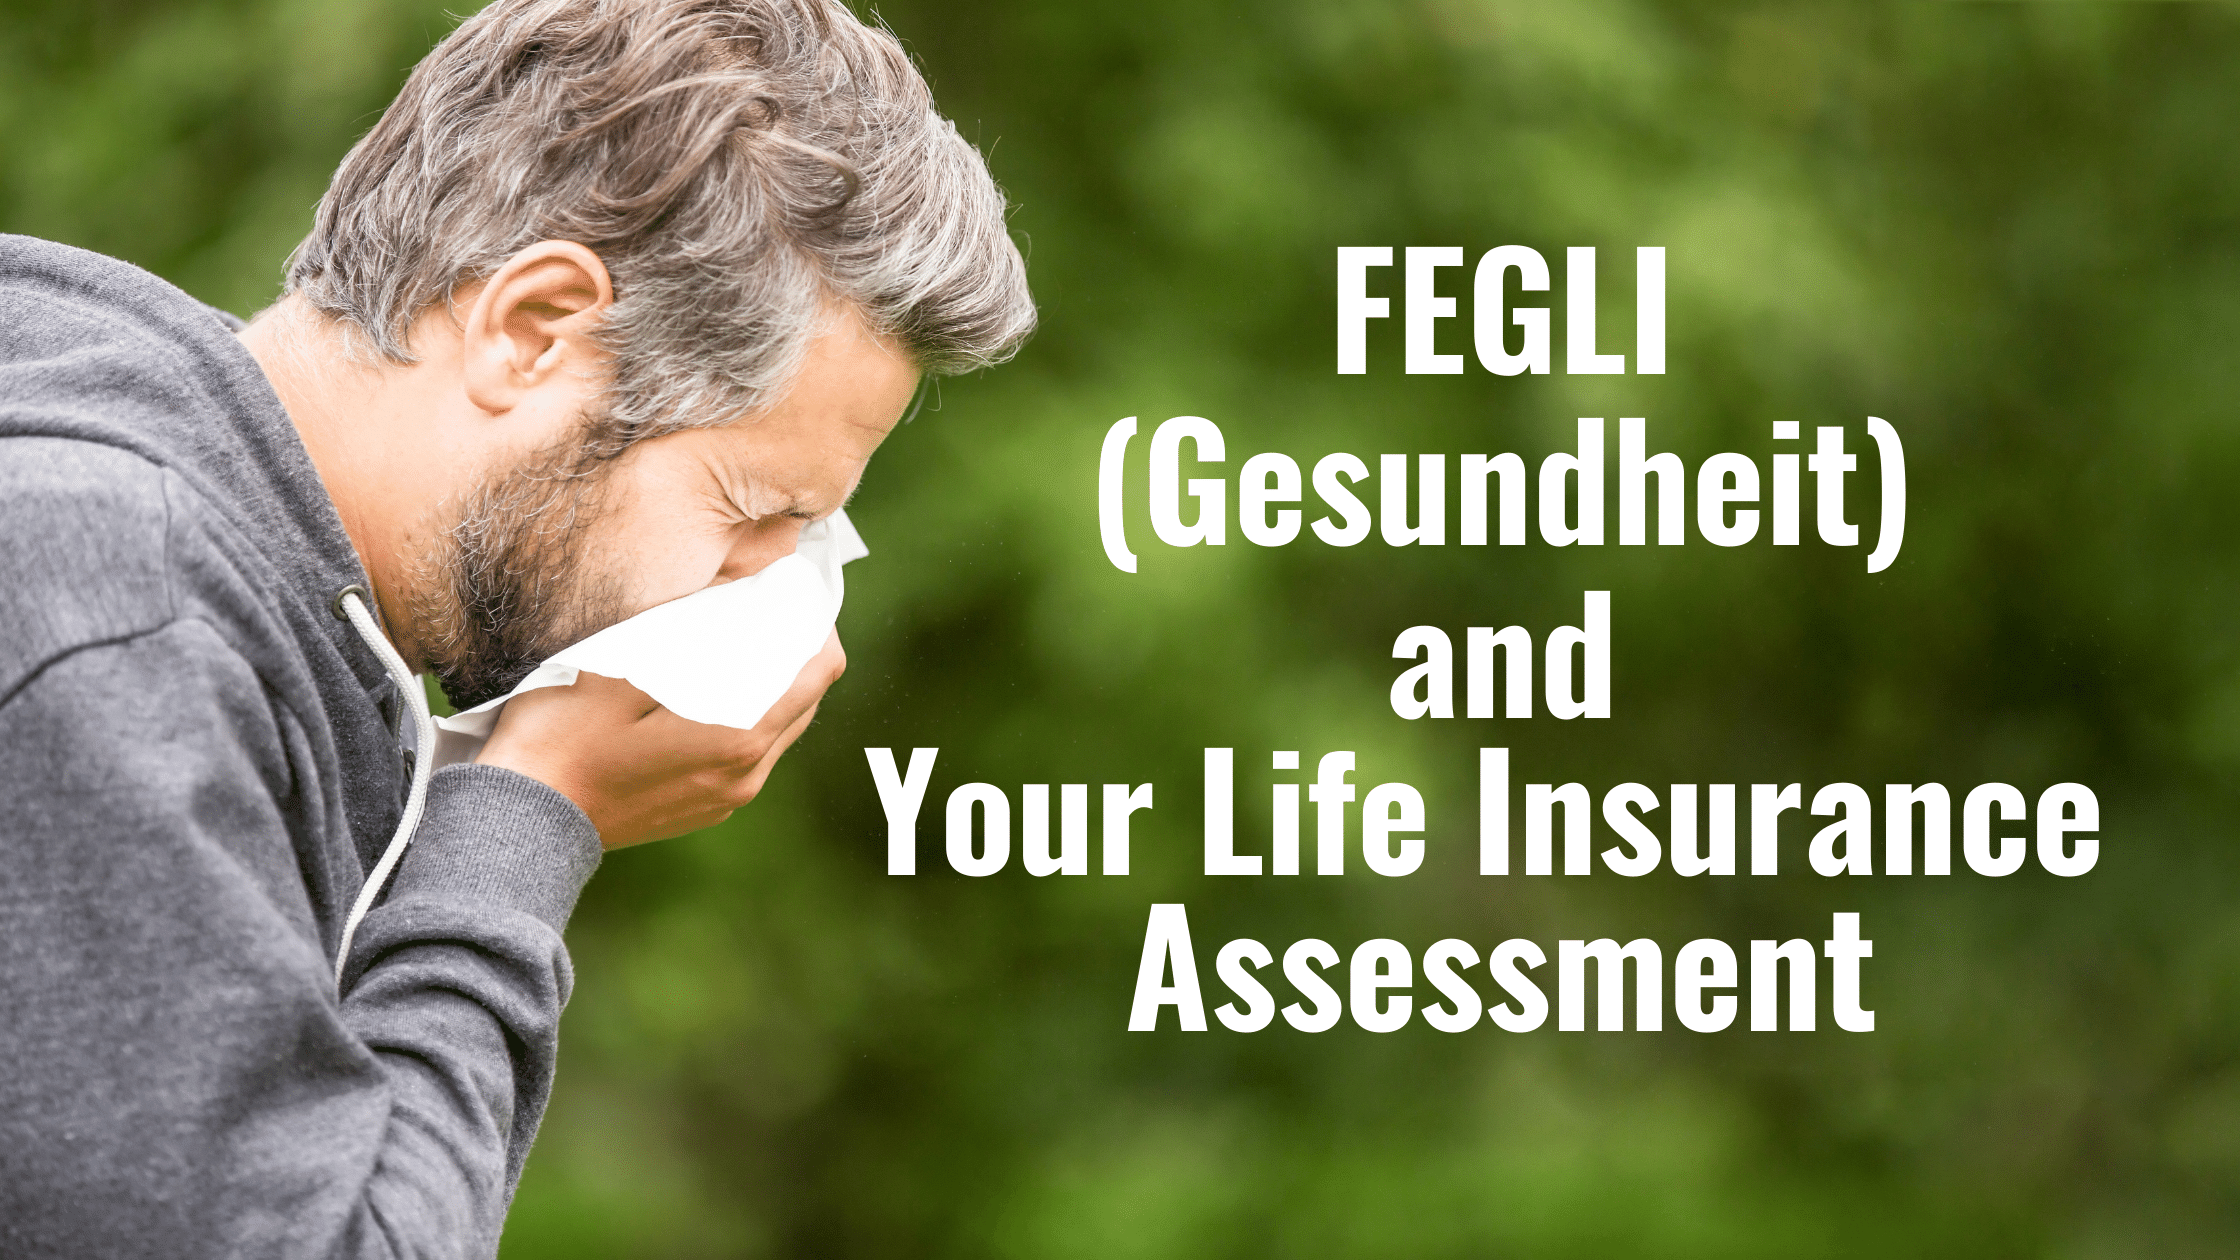 FEGLI, Gesundheit, and Your Life Insurance Needs Assessment